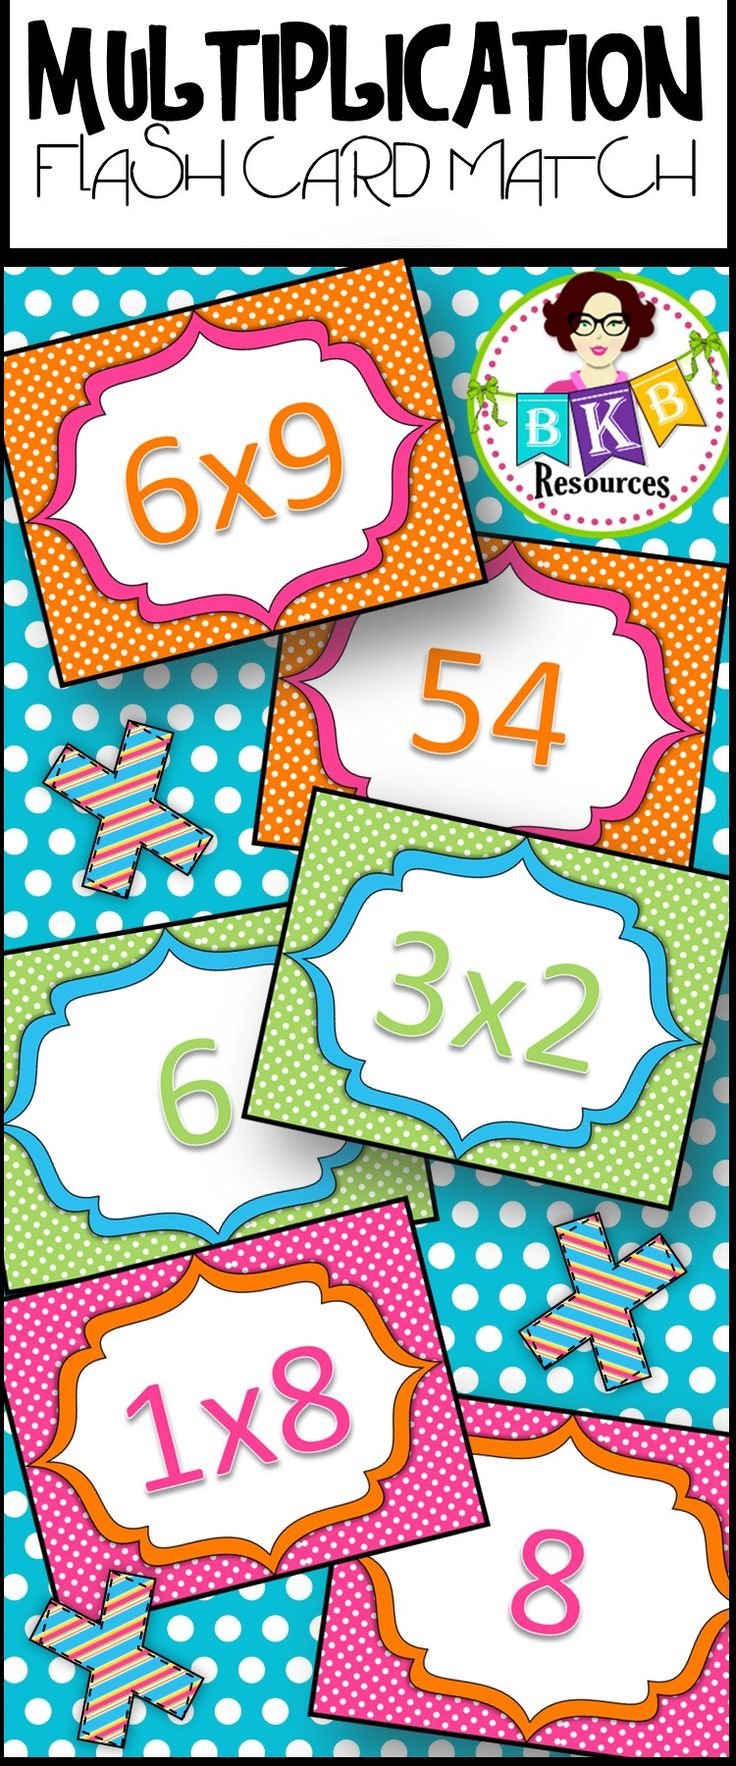 free printable multiplication flash cards for kids math activities